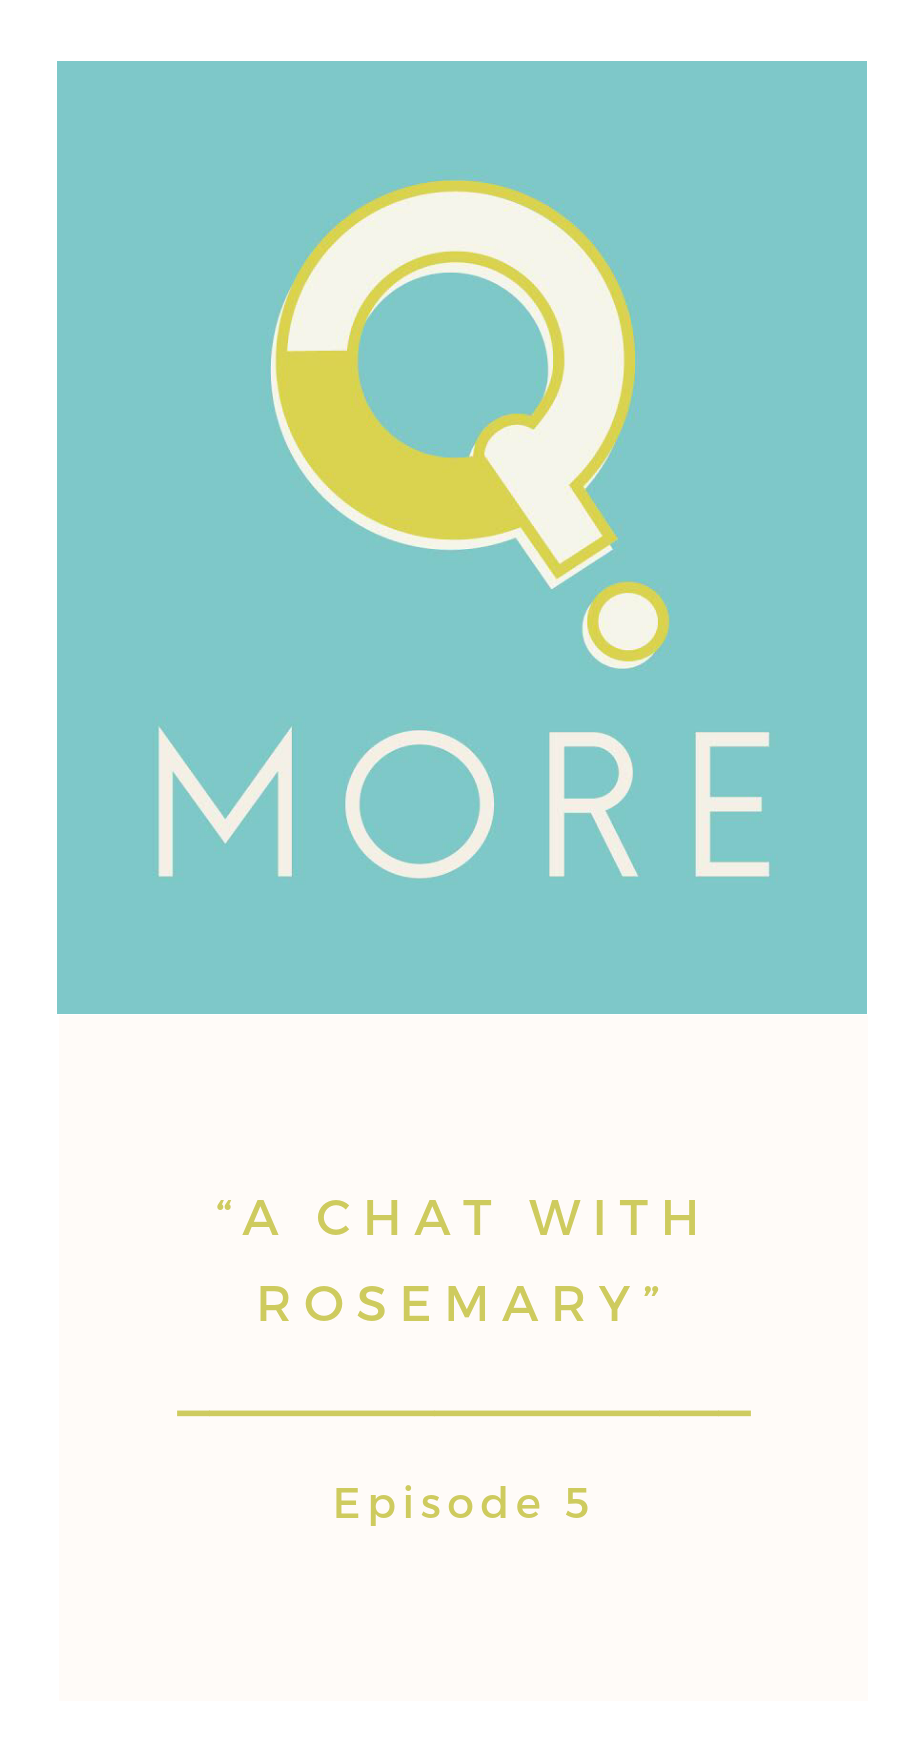 Episode 5: A Chat With Rosemary - Q.More Podcast